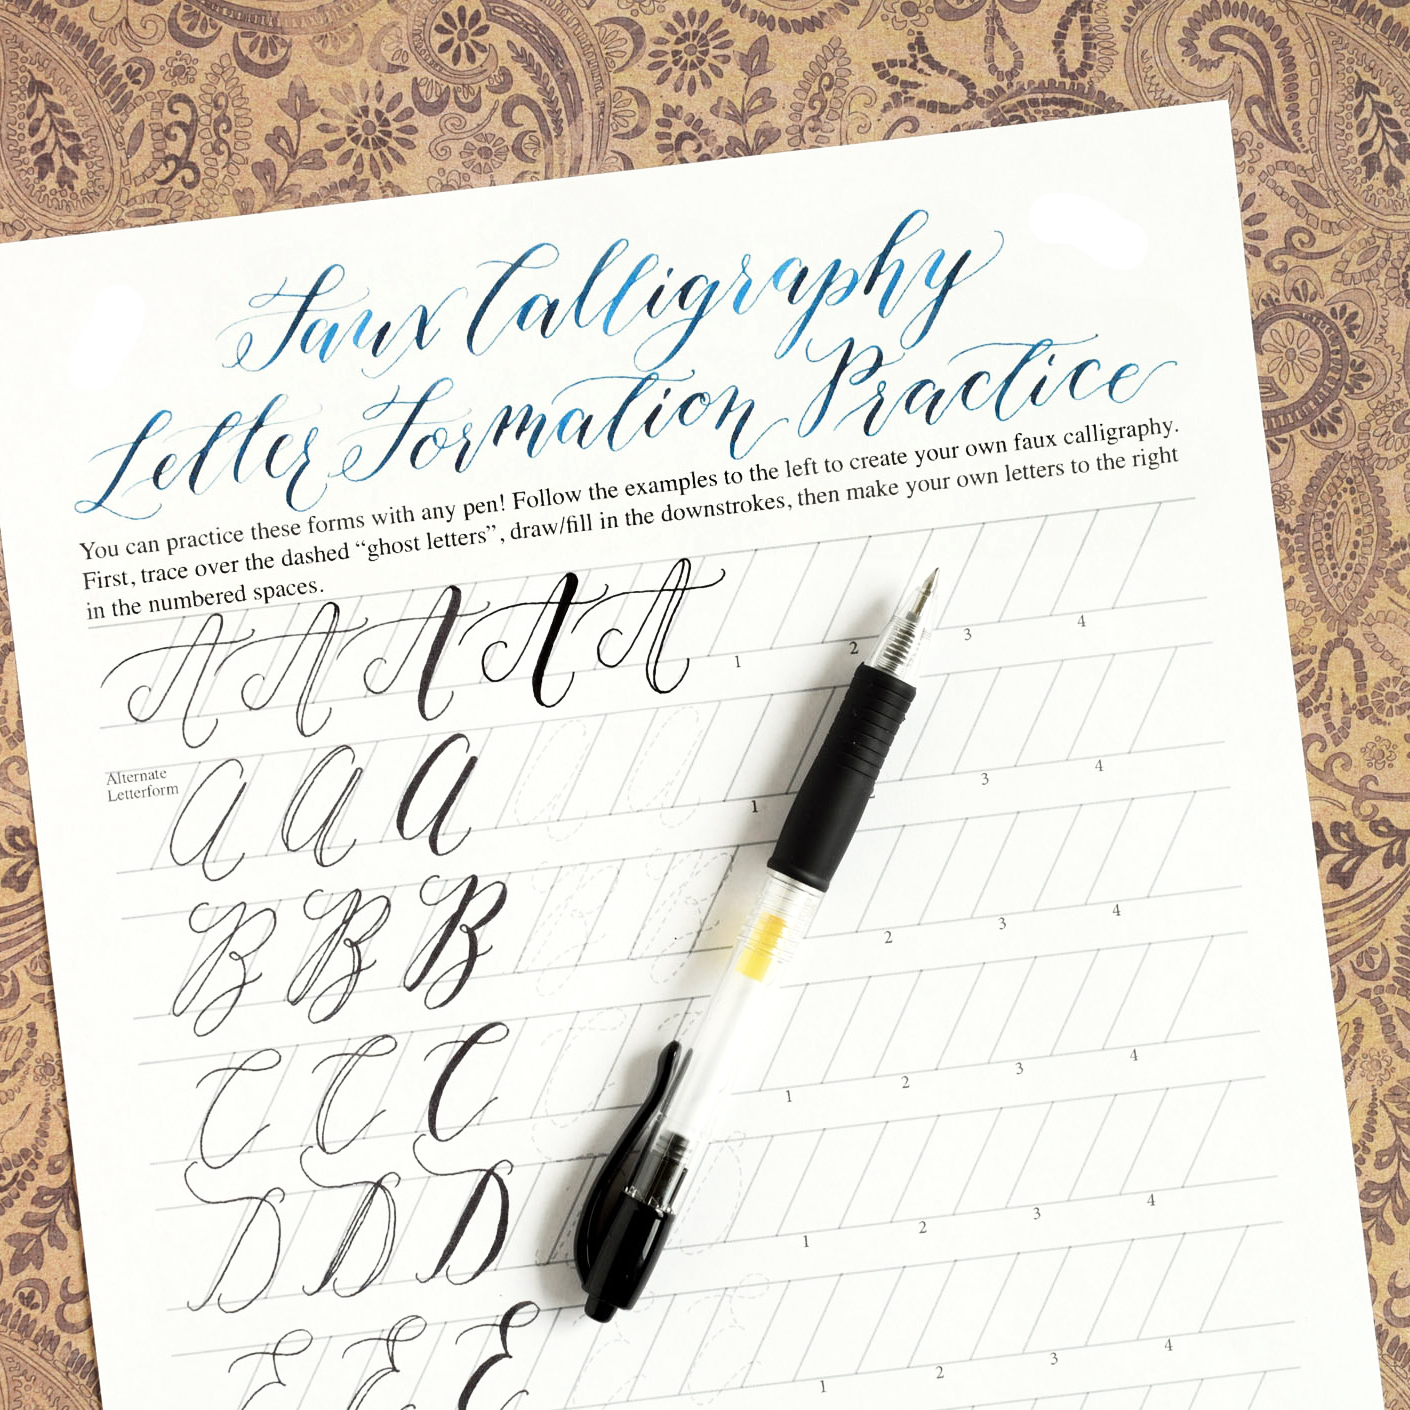 Worksheets calligraphy practice atidentity